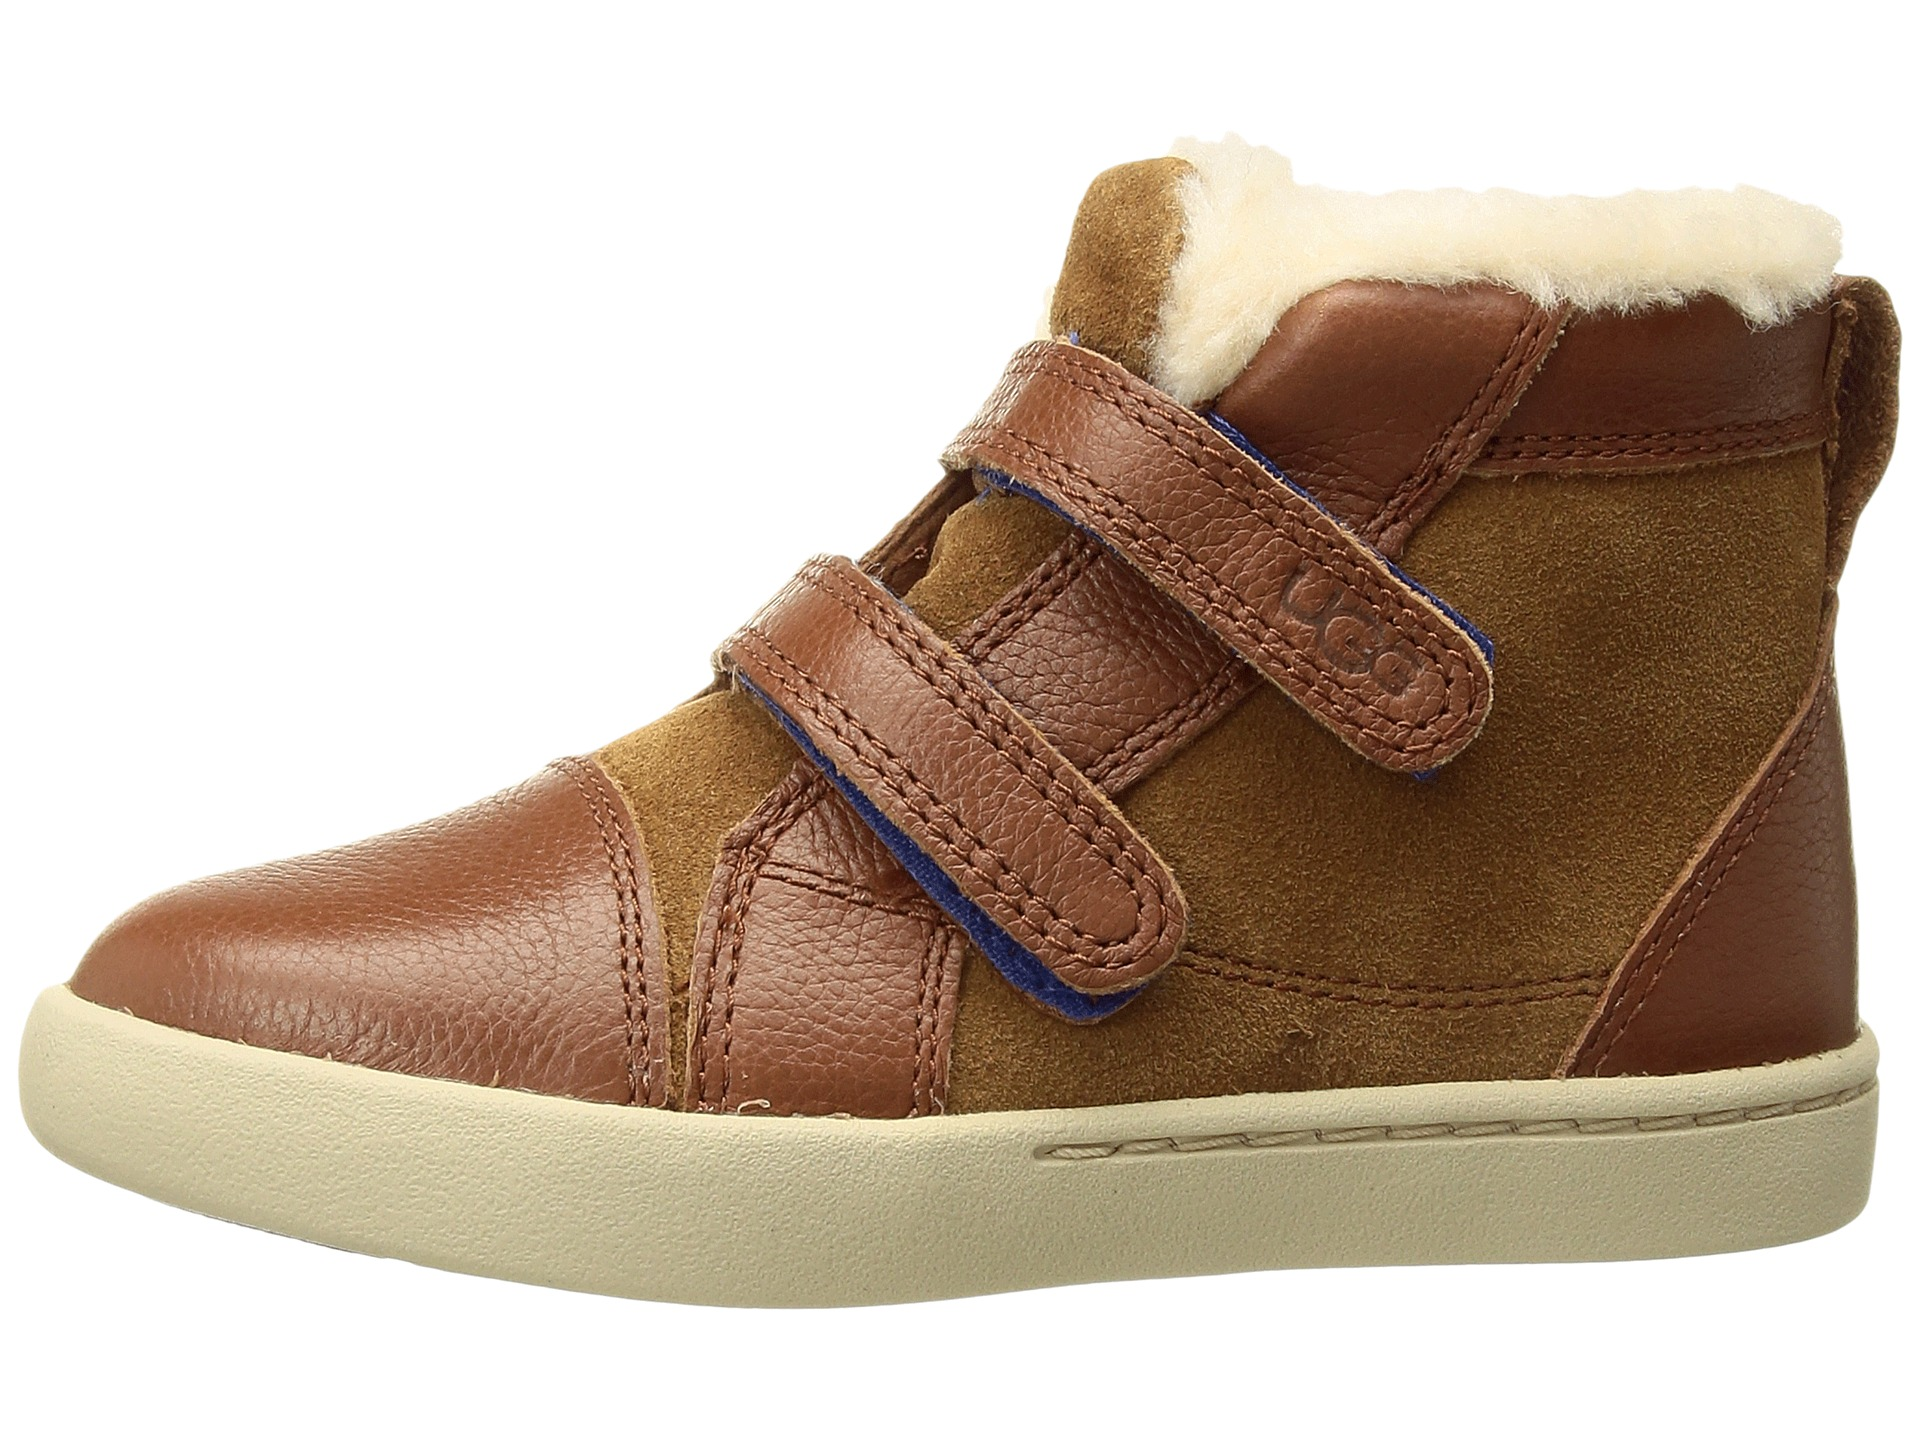 UGG Kids Rennon (Toddler/Little Kid) at Zappos.com